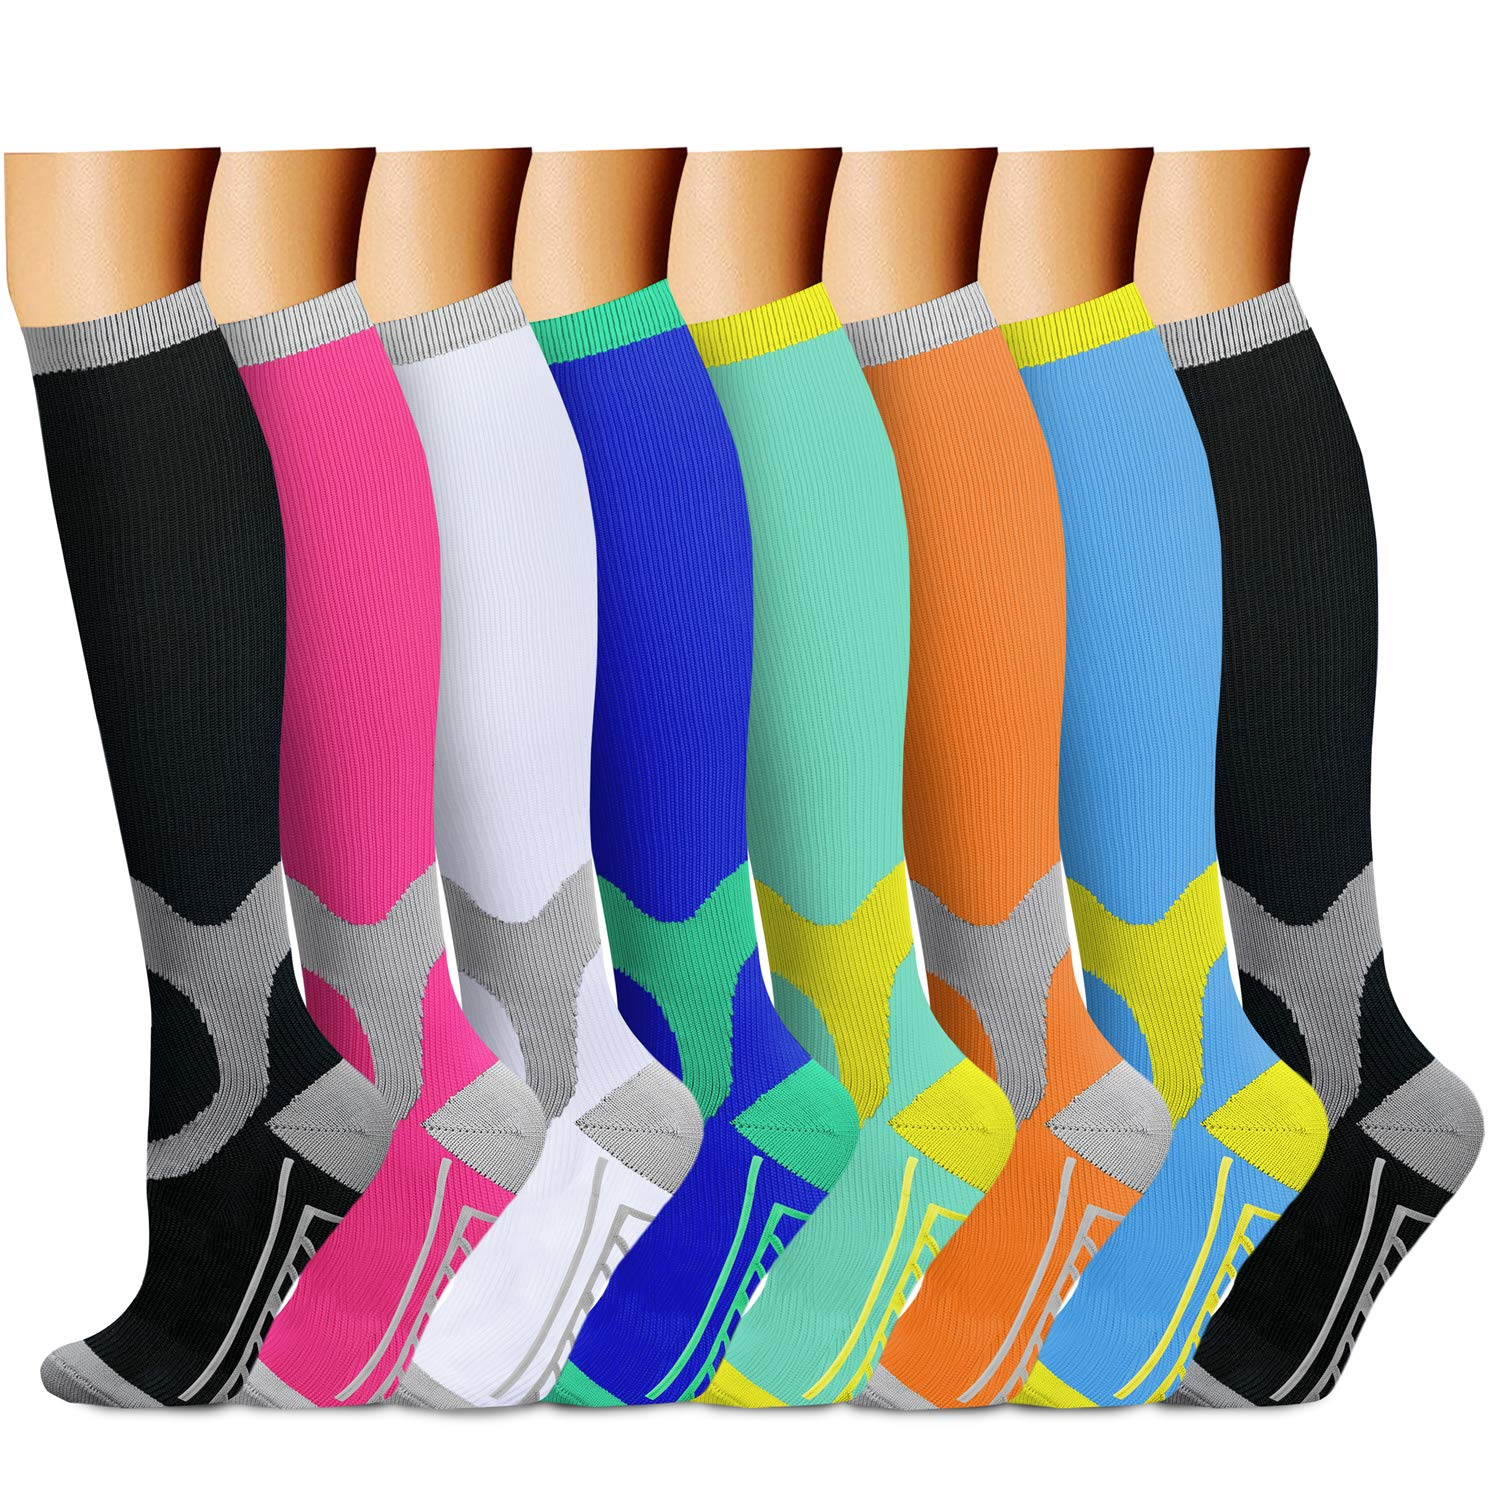 CHARMKING Compression Socks 15-20 mmHg is BEST Graduated Athletic & Medical for Men & Women Running, Travel, Nurses, Pregnant - Boost Performance, Blood Circulation & Recovery(Small/Medium,Assorted 4)